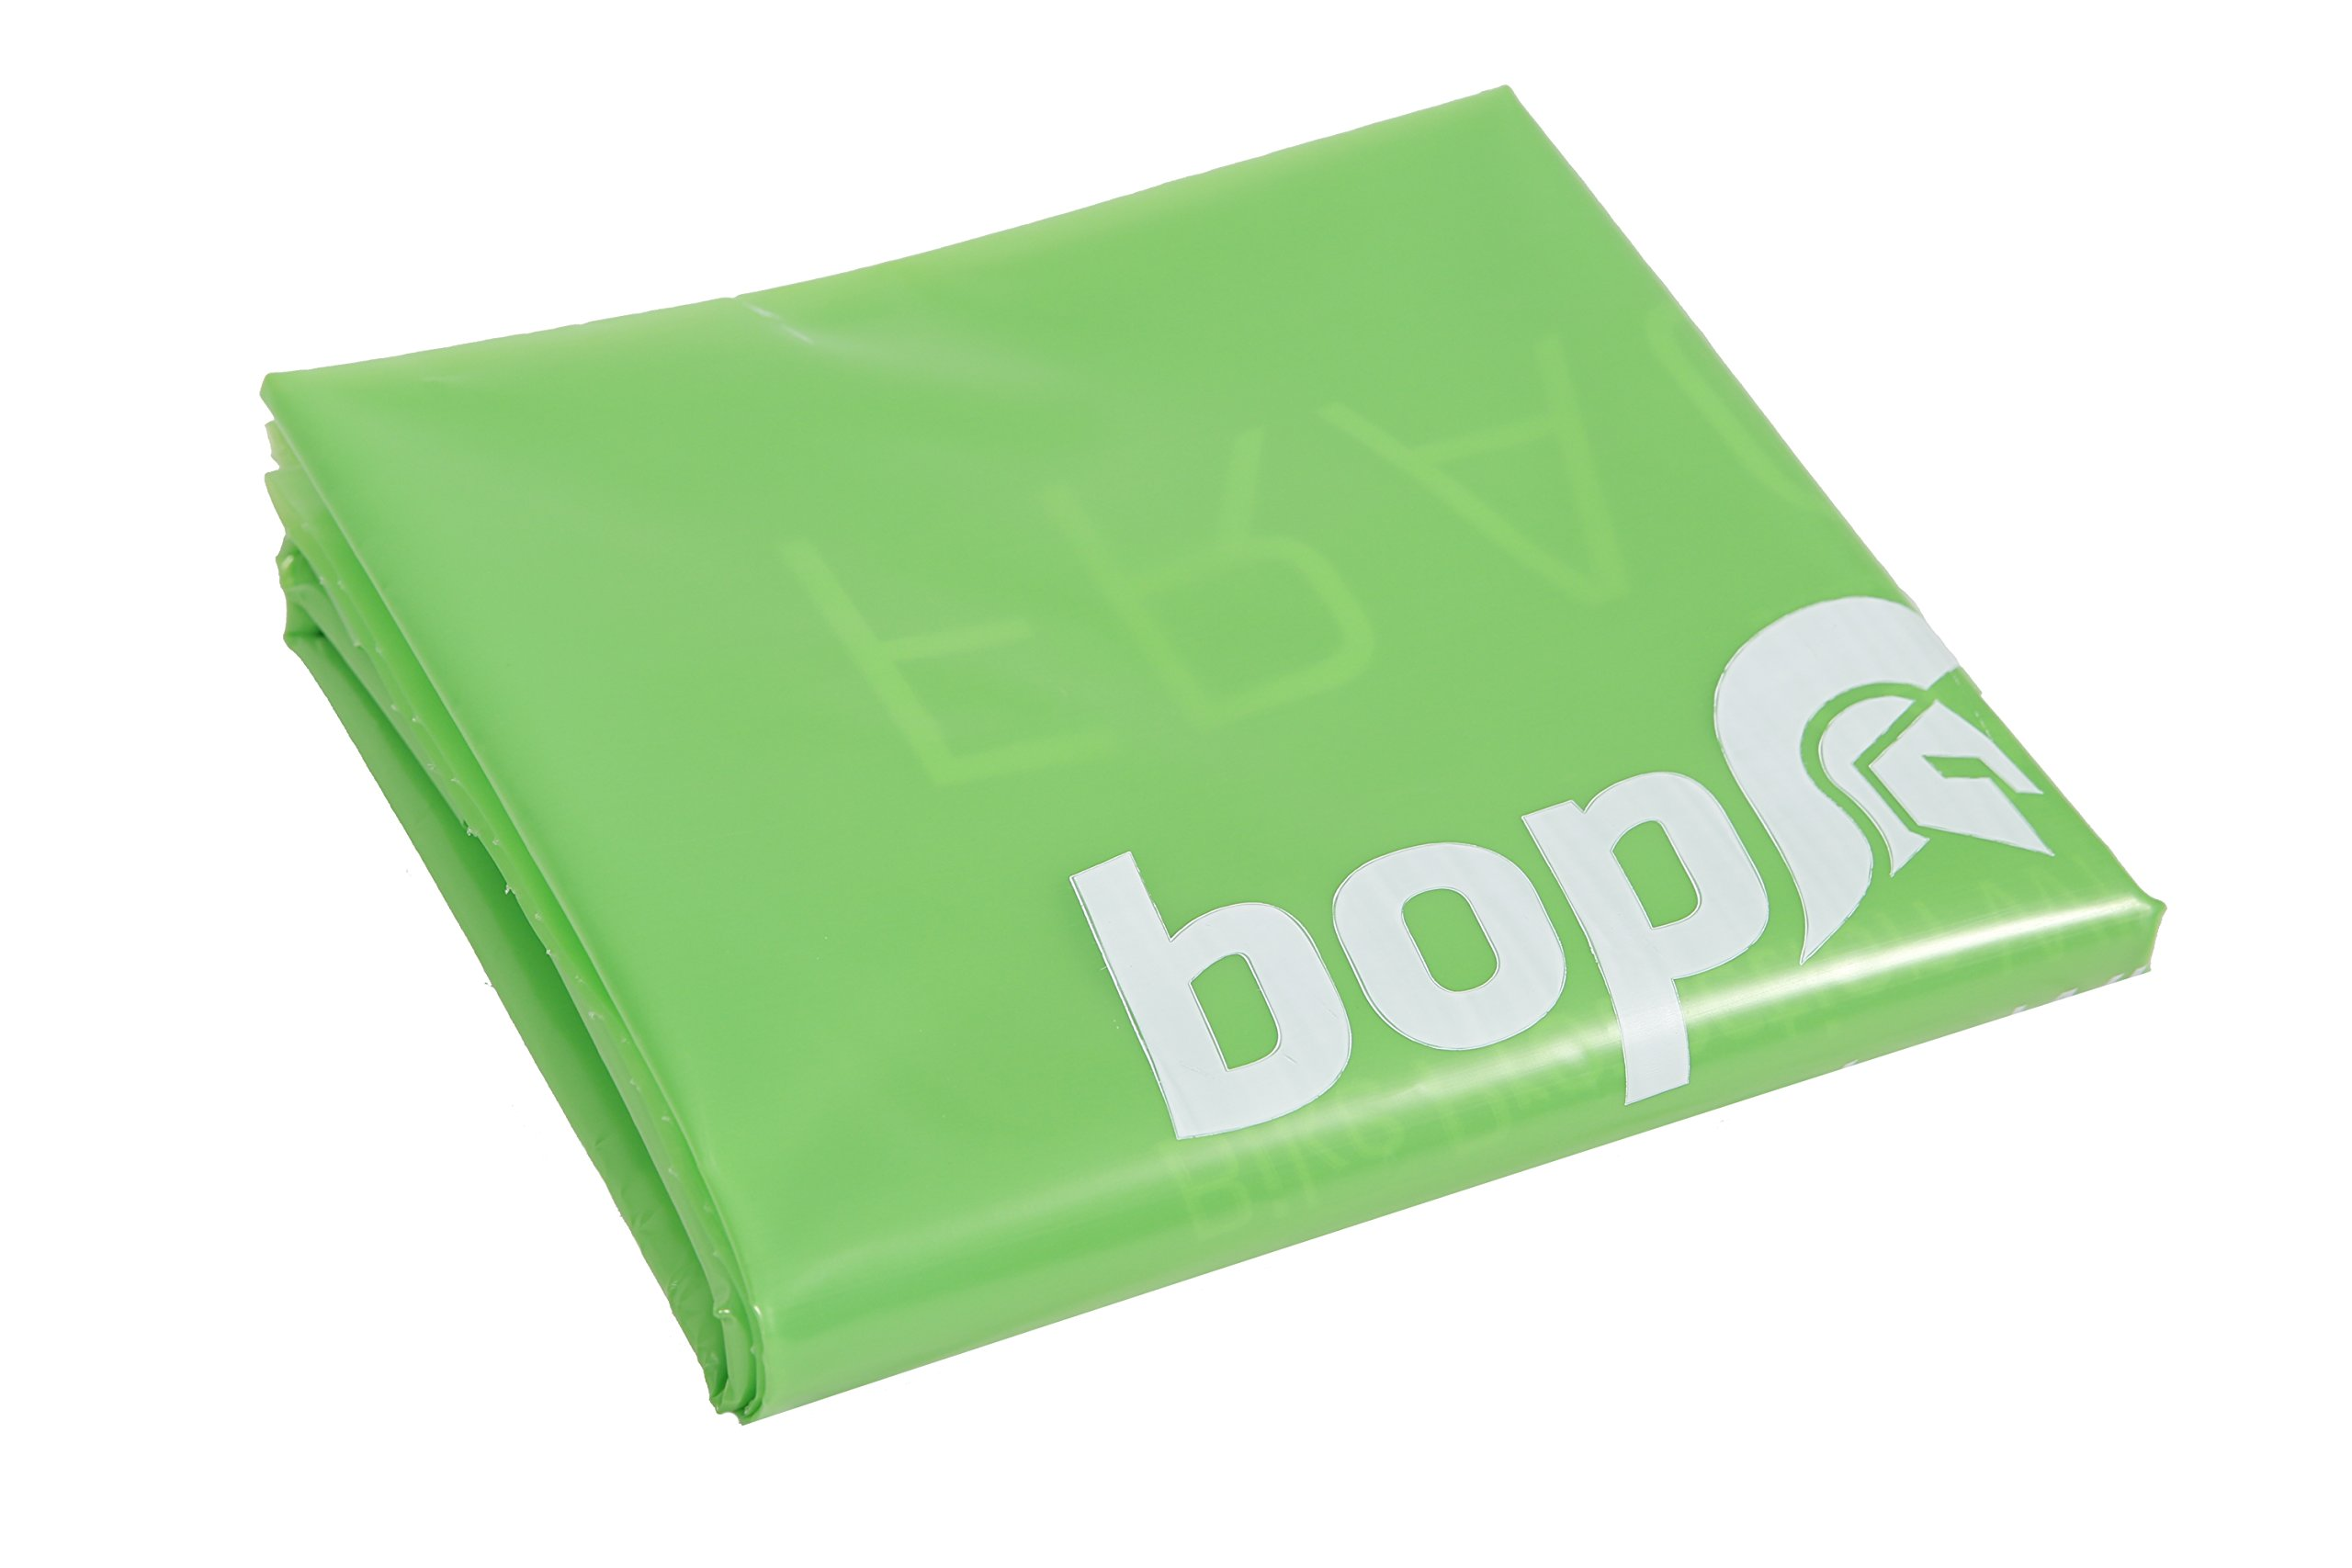 Bopworx Heavy Duty Bicycle Polythene Travel Bag - Ideal Cover For Bike Transportation and Storage